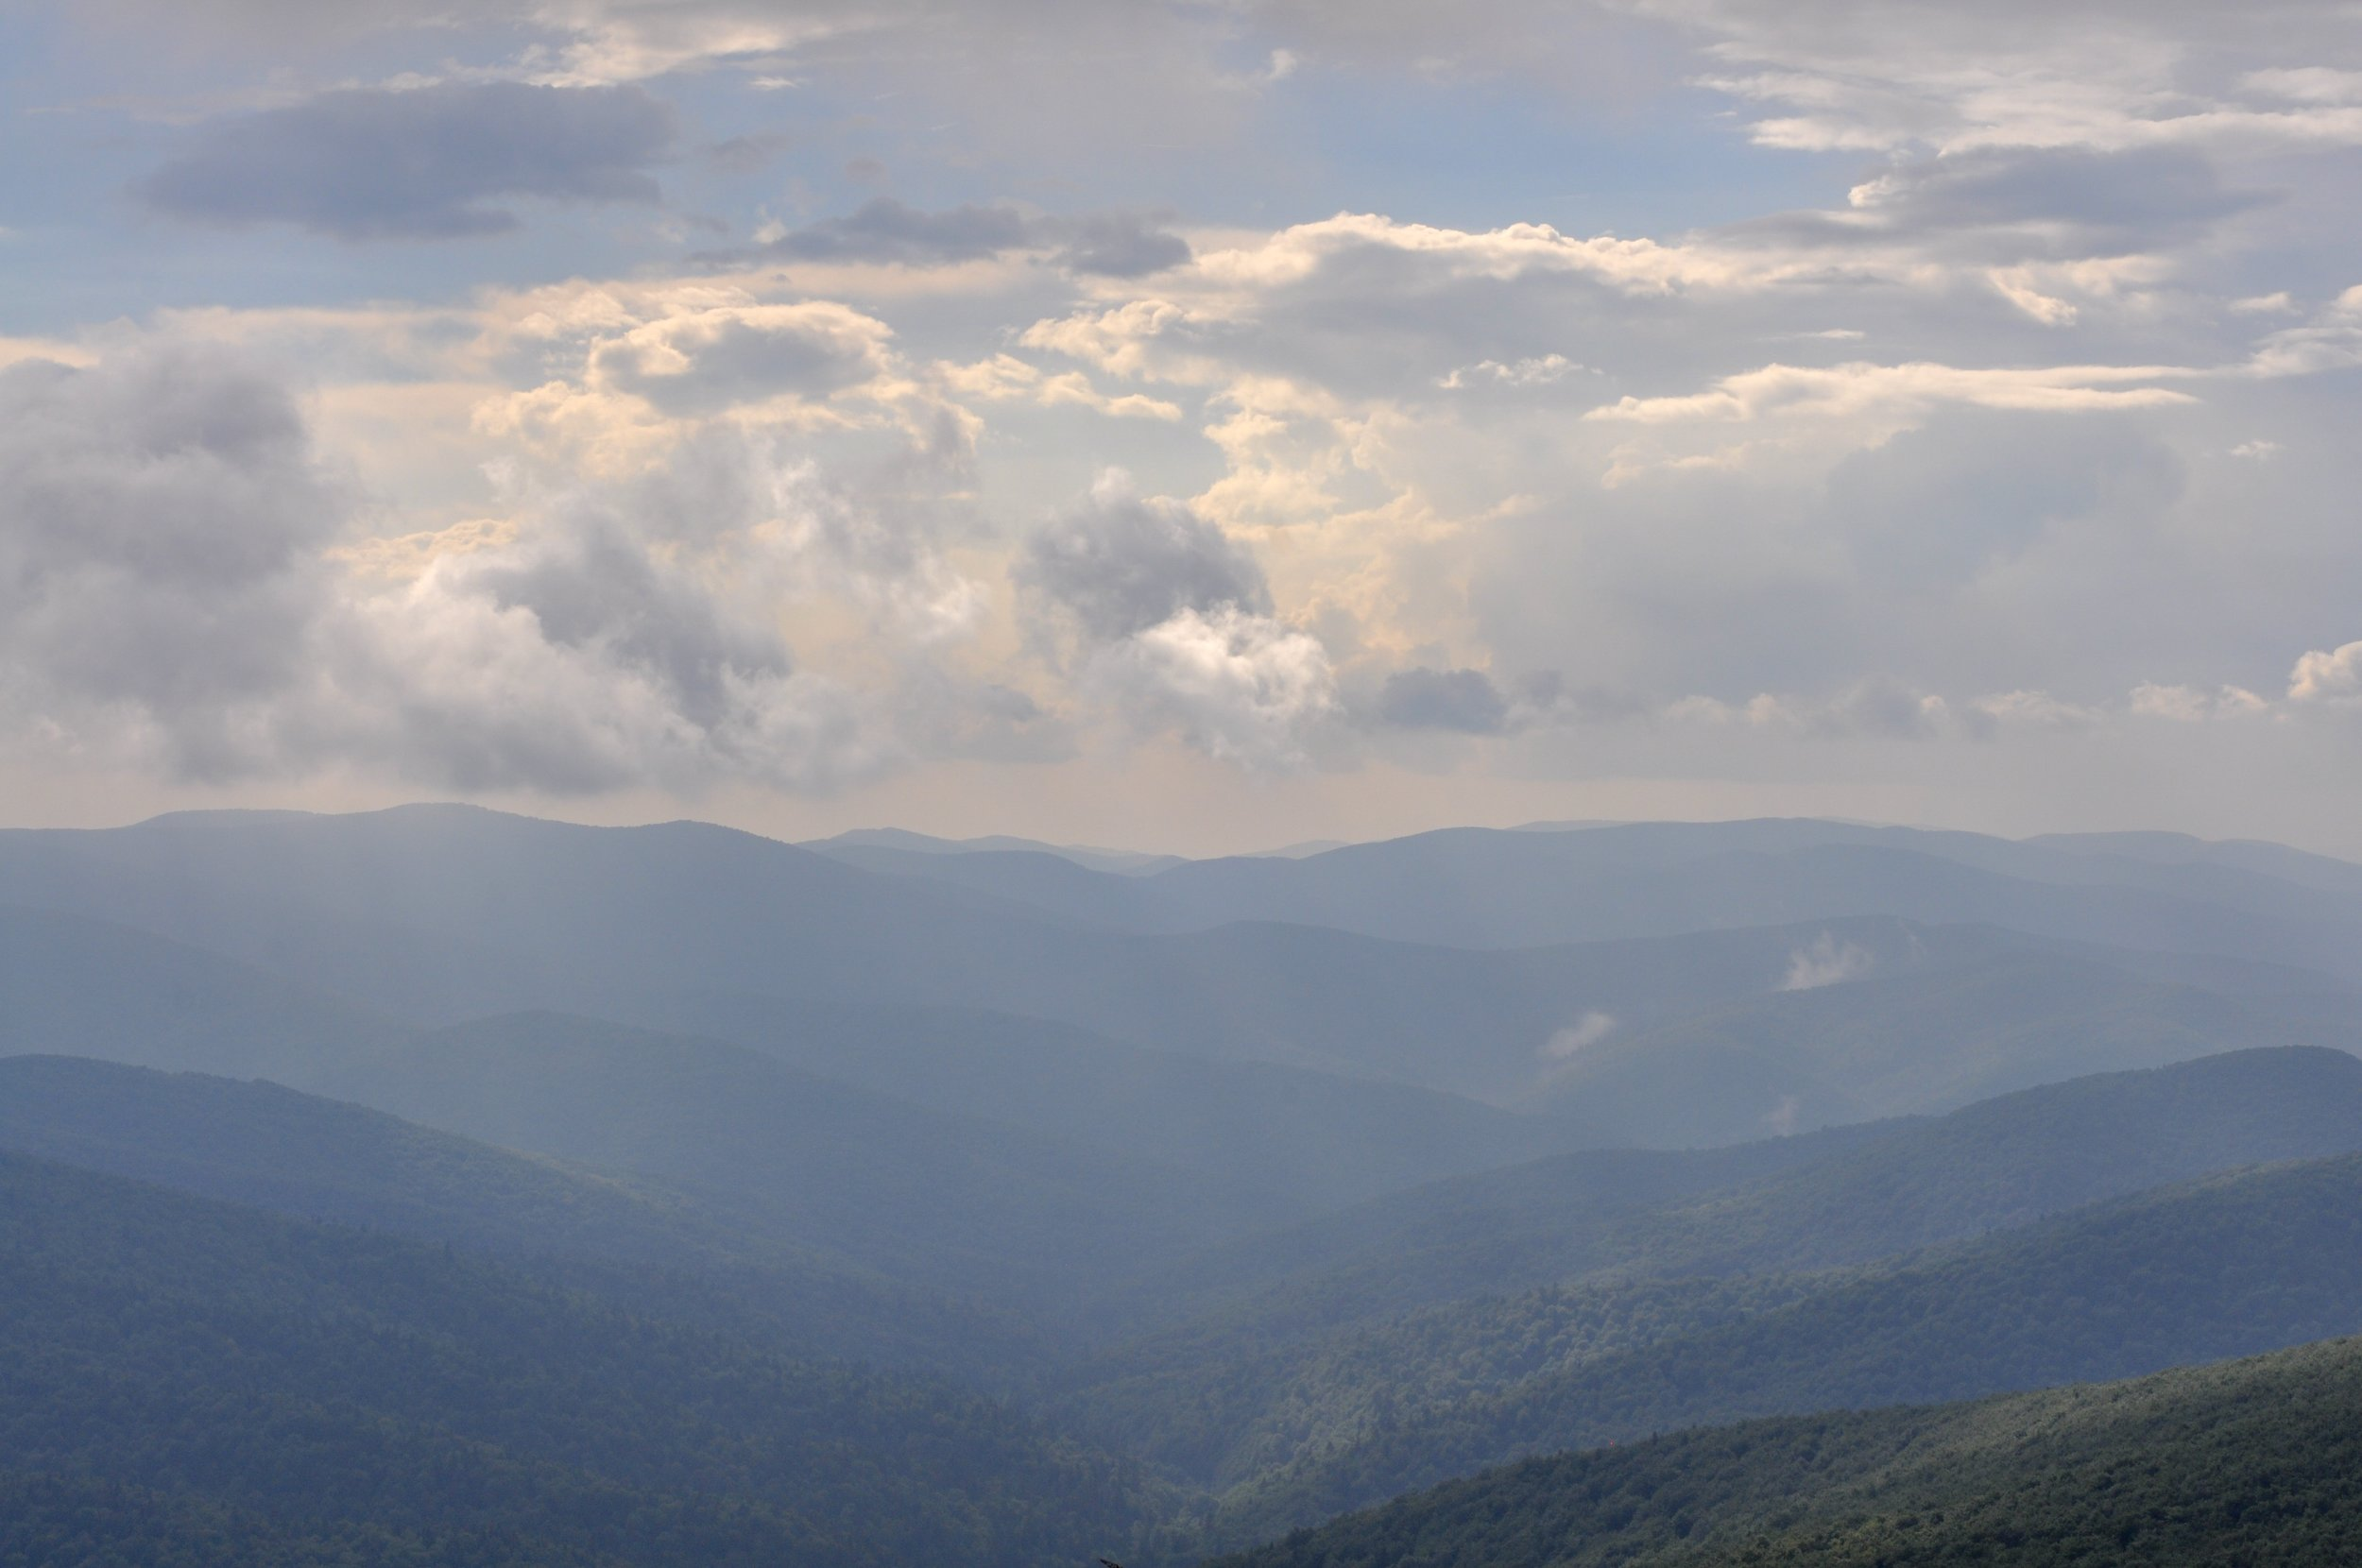 Views of mountains and valleys on the Tri-Border hike in the Bieszcady Mountains